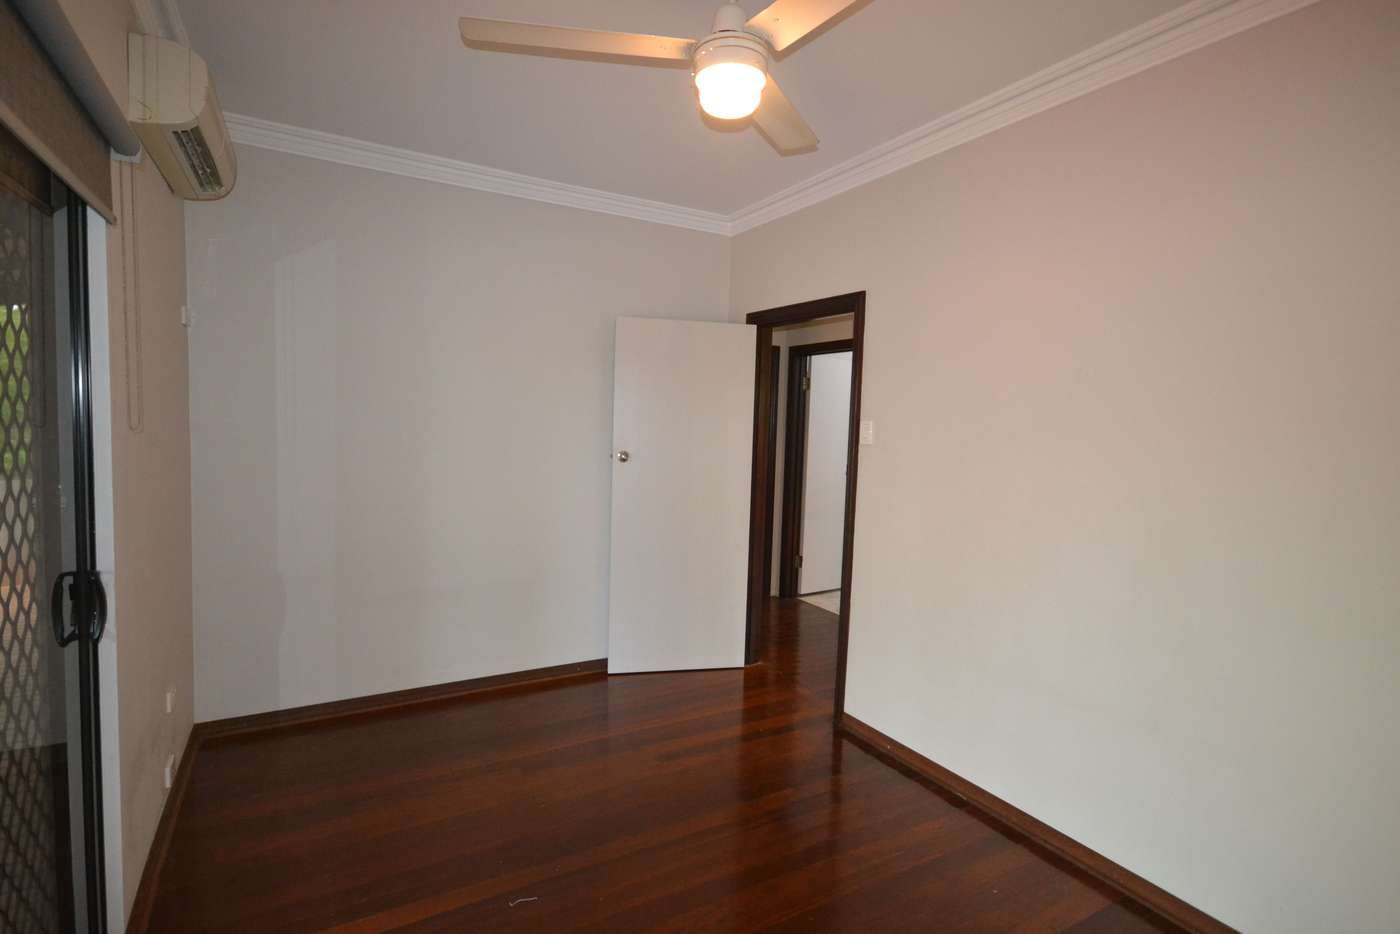 Sixth view of Homely house listing, 30 Saville Street, Broome WA 6725